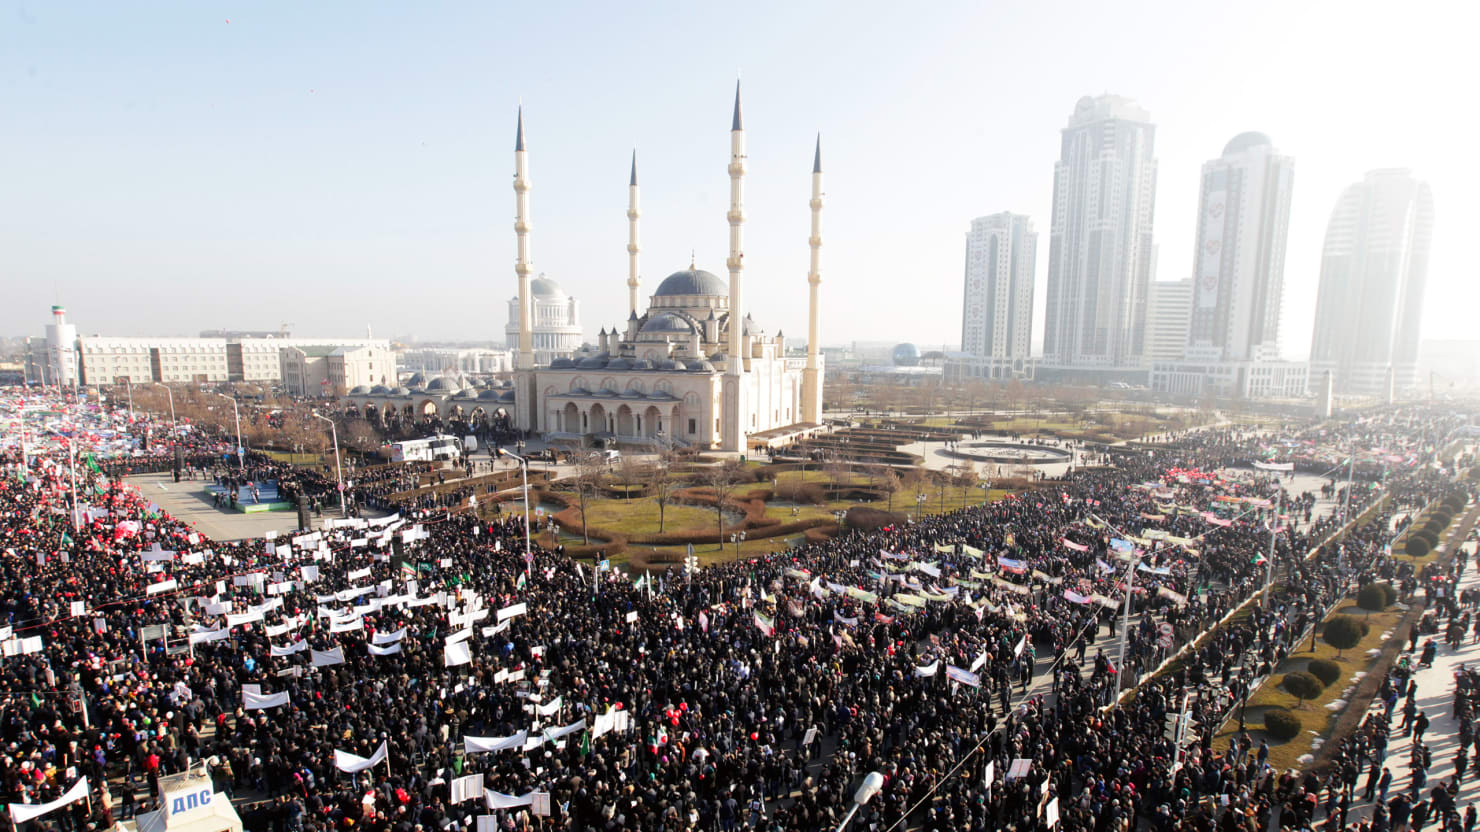 Chechnya Vs. Charlie: Grozny Holds Biggest Protest Ever To Oppose Muhammed Cartoons